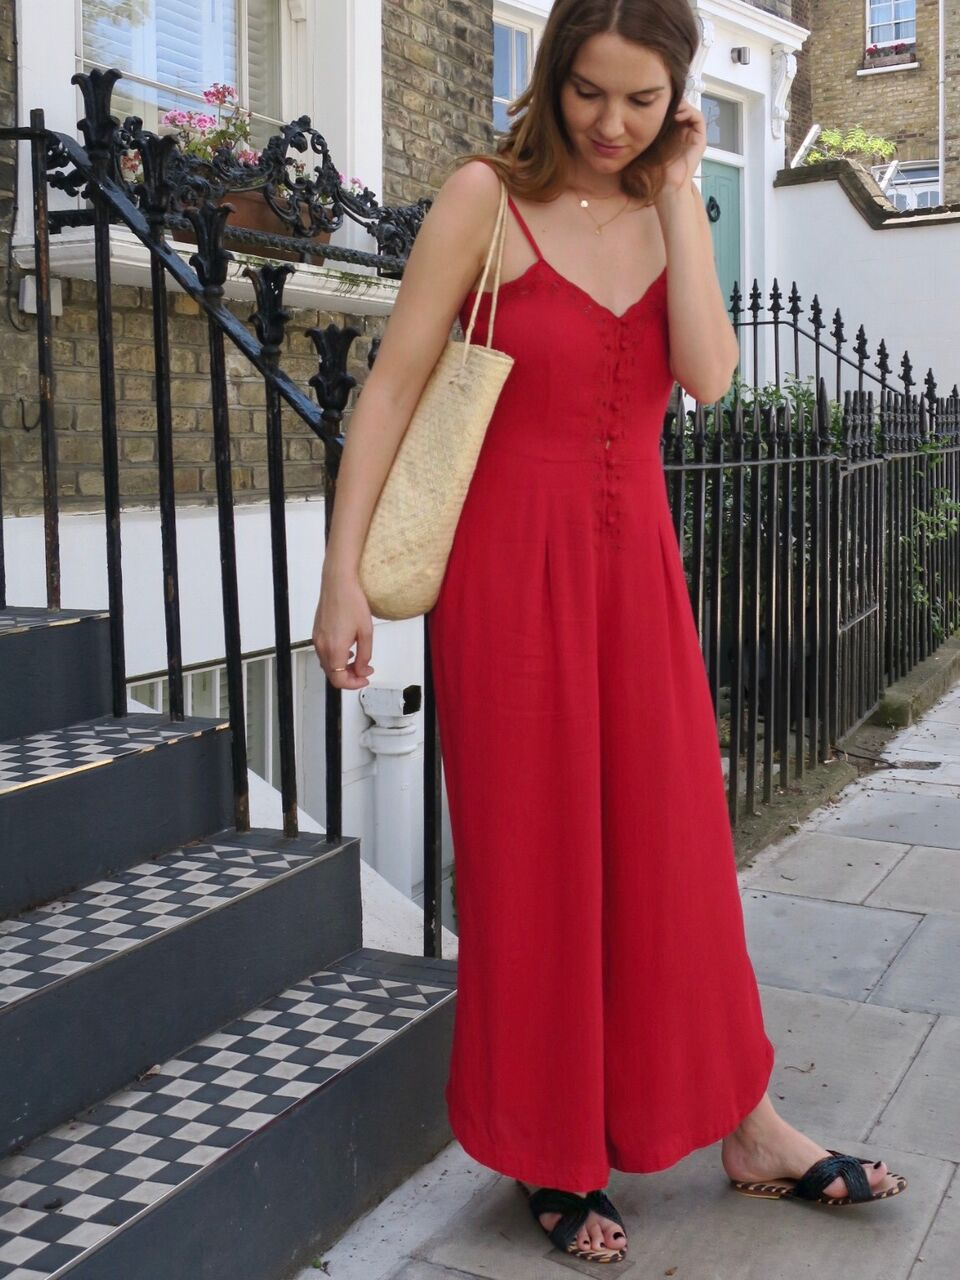 THE GROWN UP EDIT - Red Jumpsuit Basket Bag